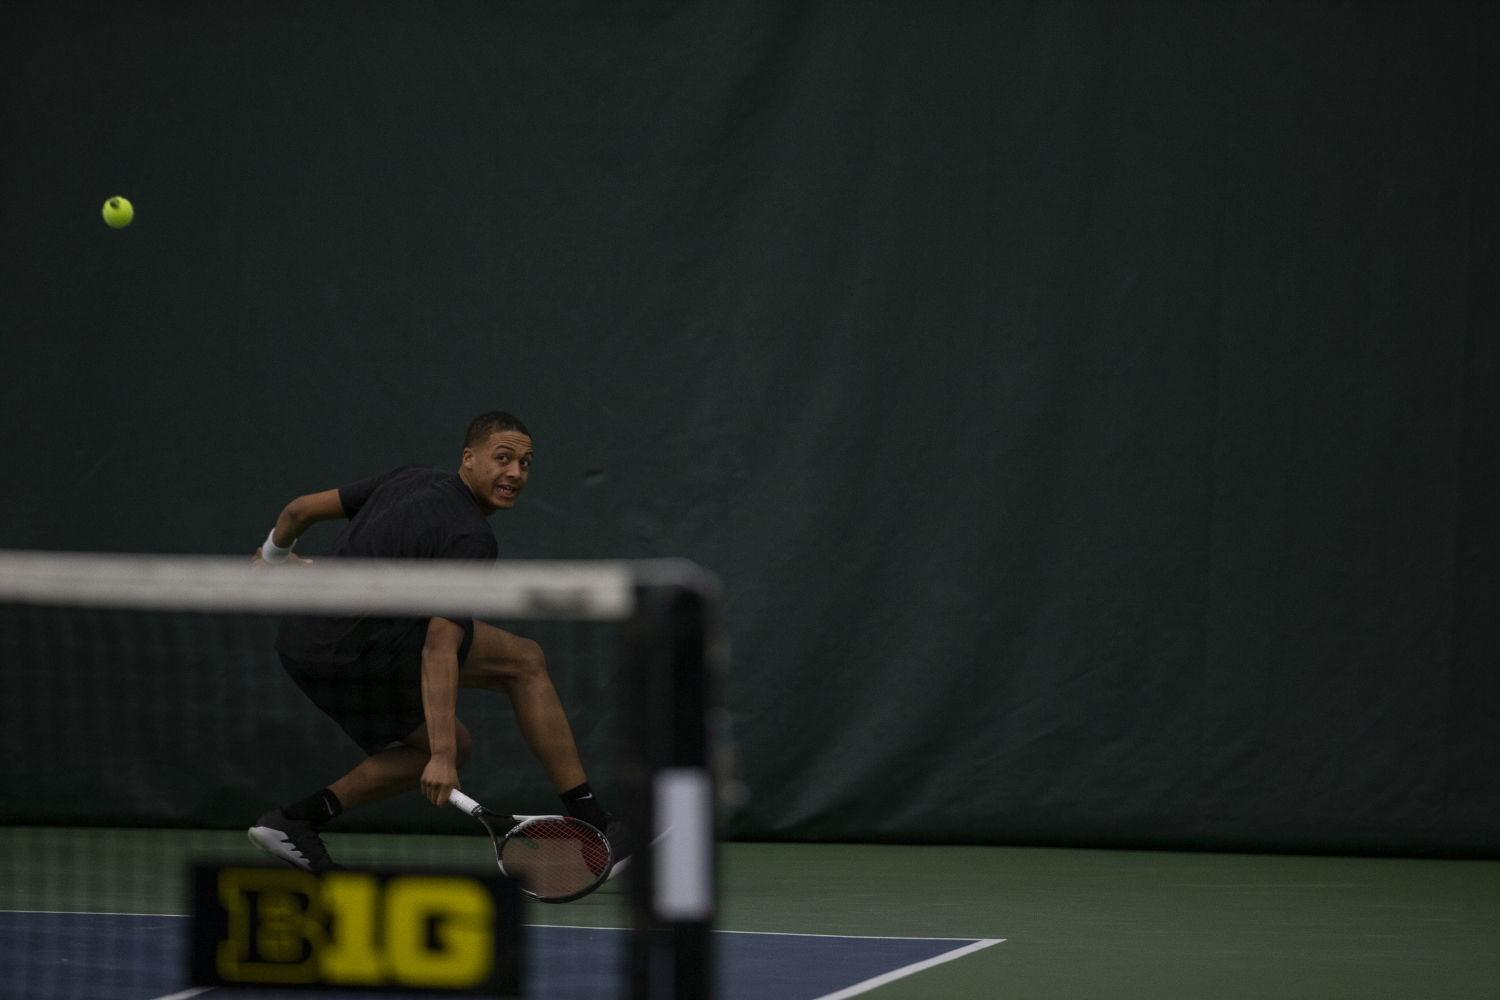 Oliver+Okonkwo+watches+the+ball+during+the+Men%27s+tennis+match+against+University+of+Miami+at+the+Hawkeye+Tennis+and+Recreation+Complex+on+Feb.+8%2C+2019.+Okonkwo+won+his+singles+match+against+Dane+Dunlap.+Miami+defeated+Iowa+4-1.+